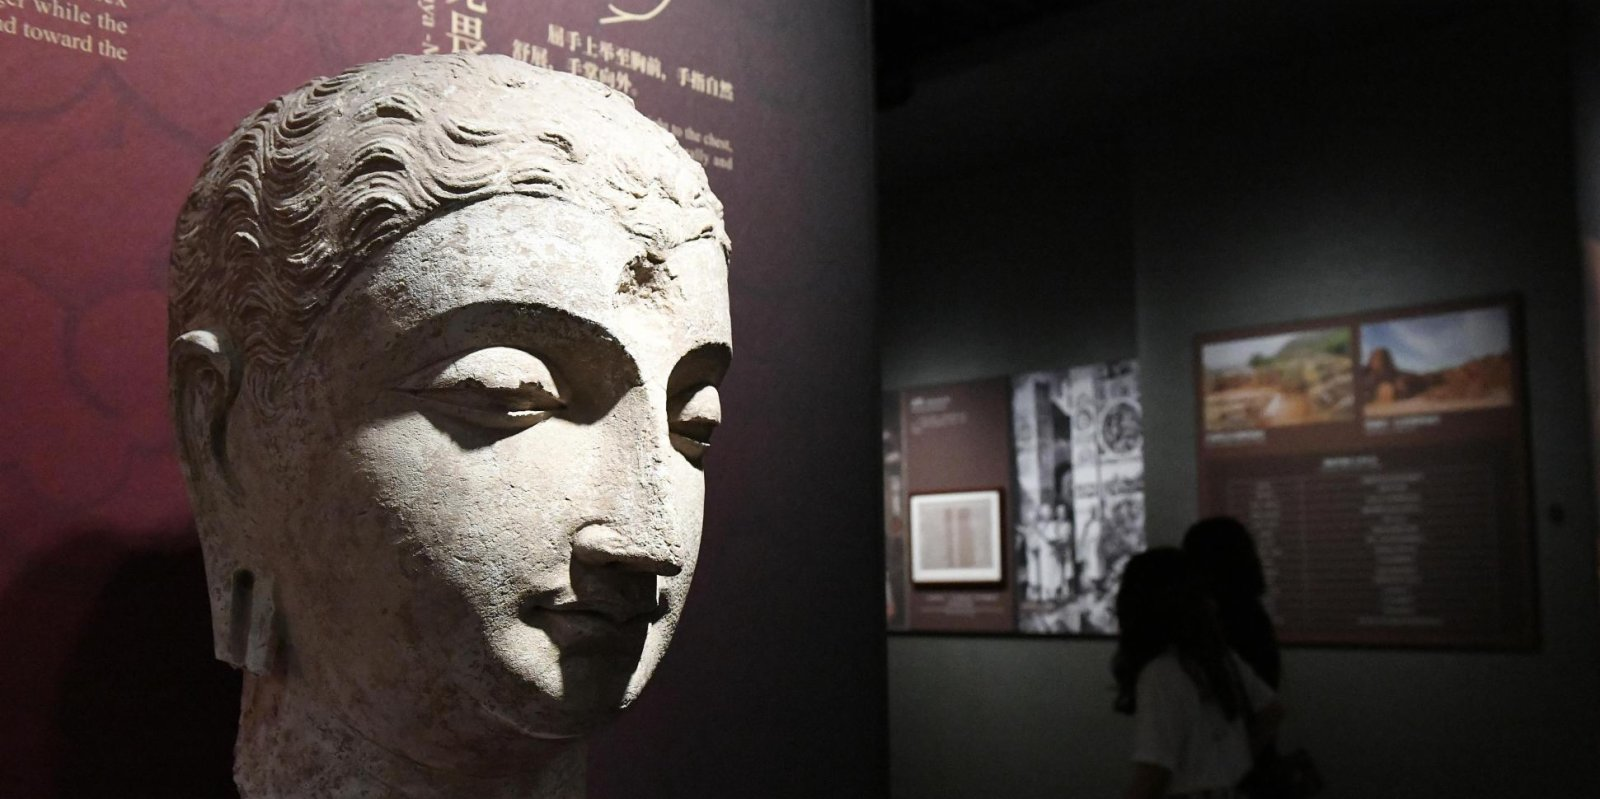 Over 1,000 new museums open in China during past 5 years